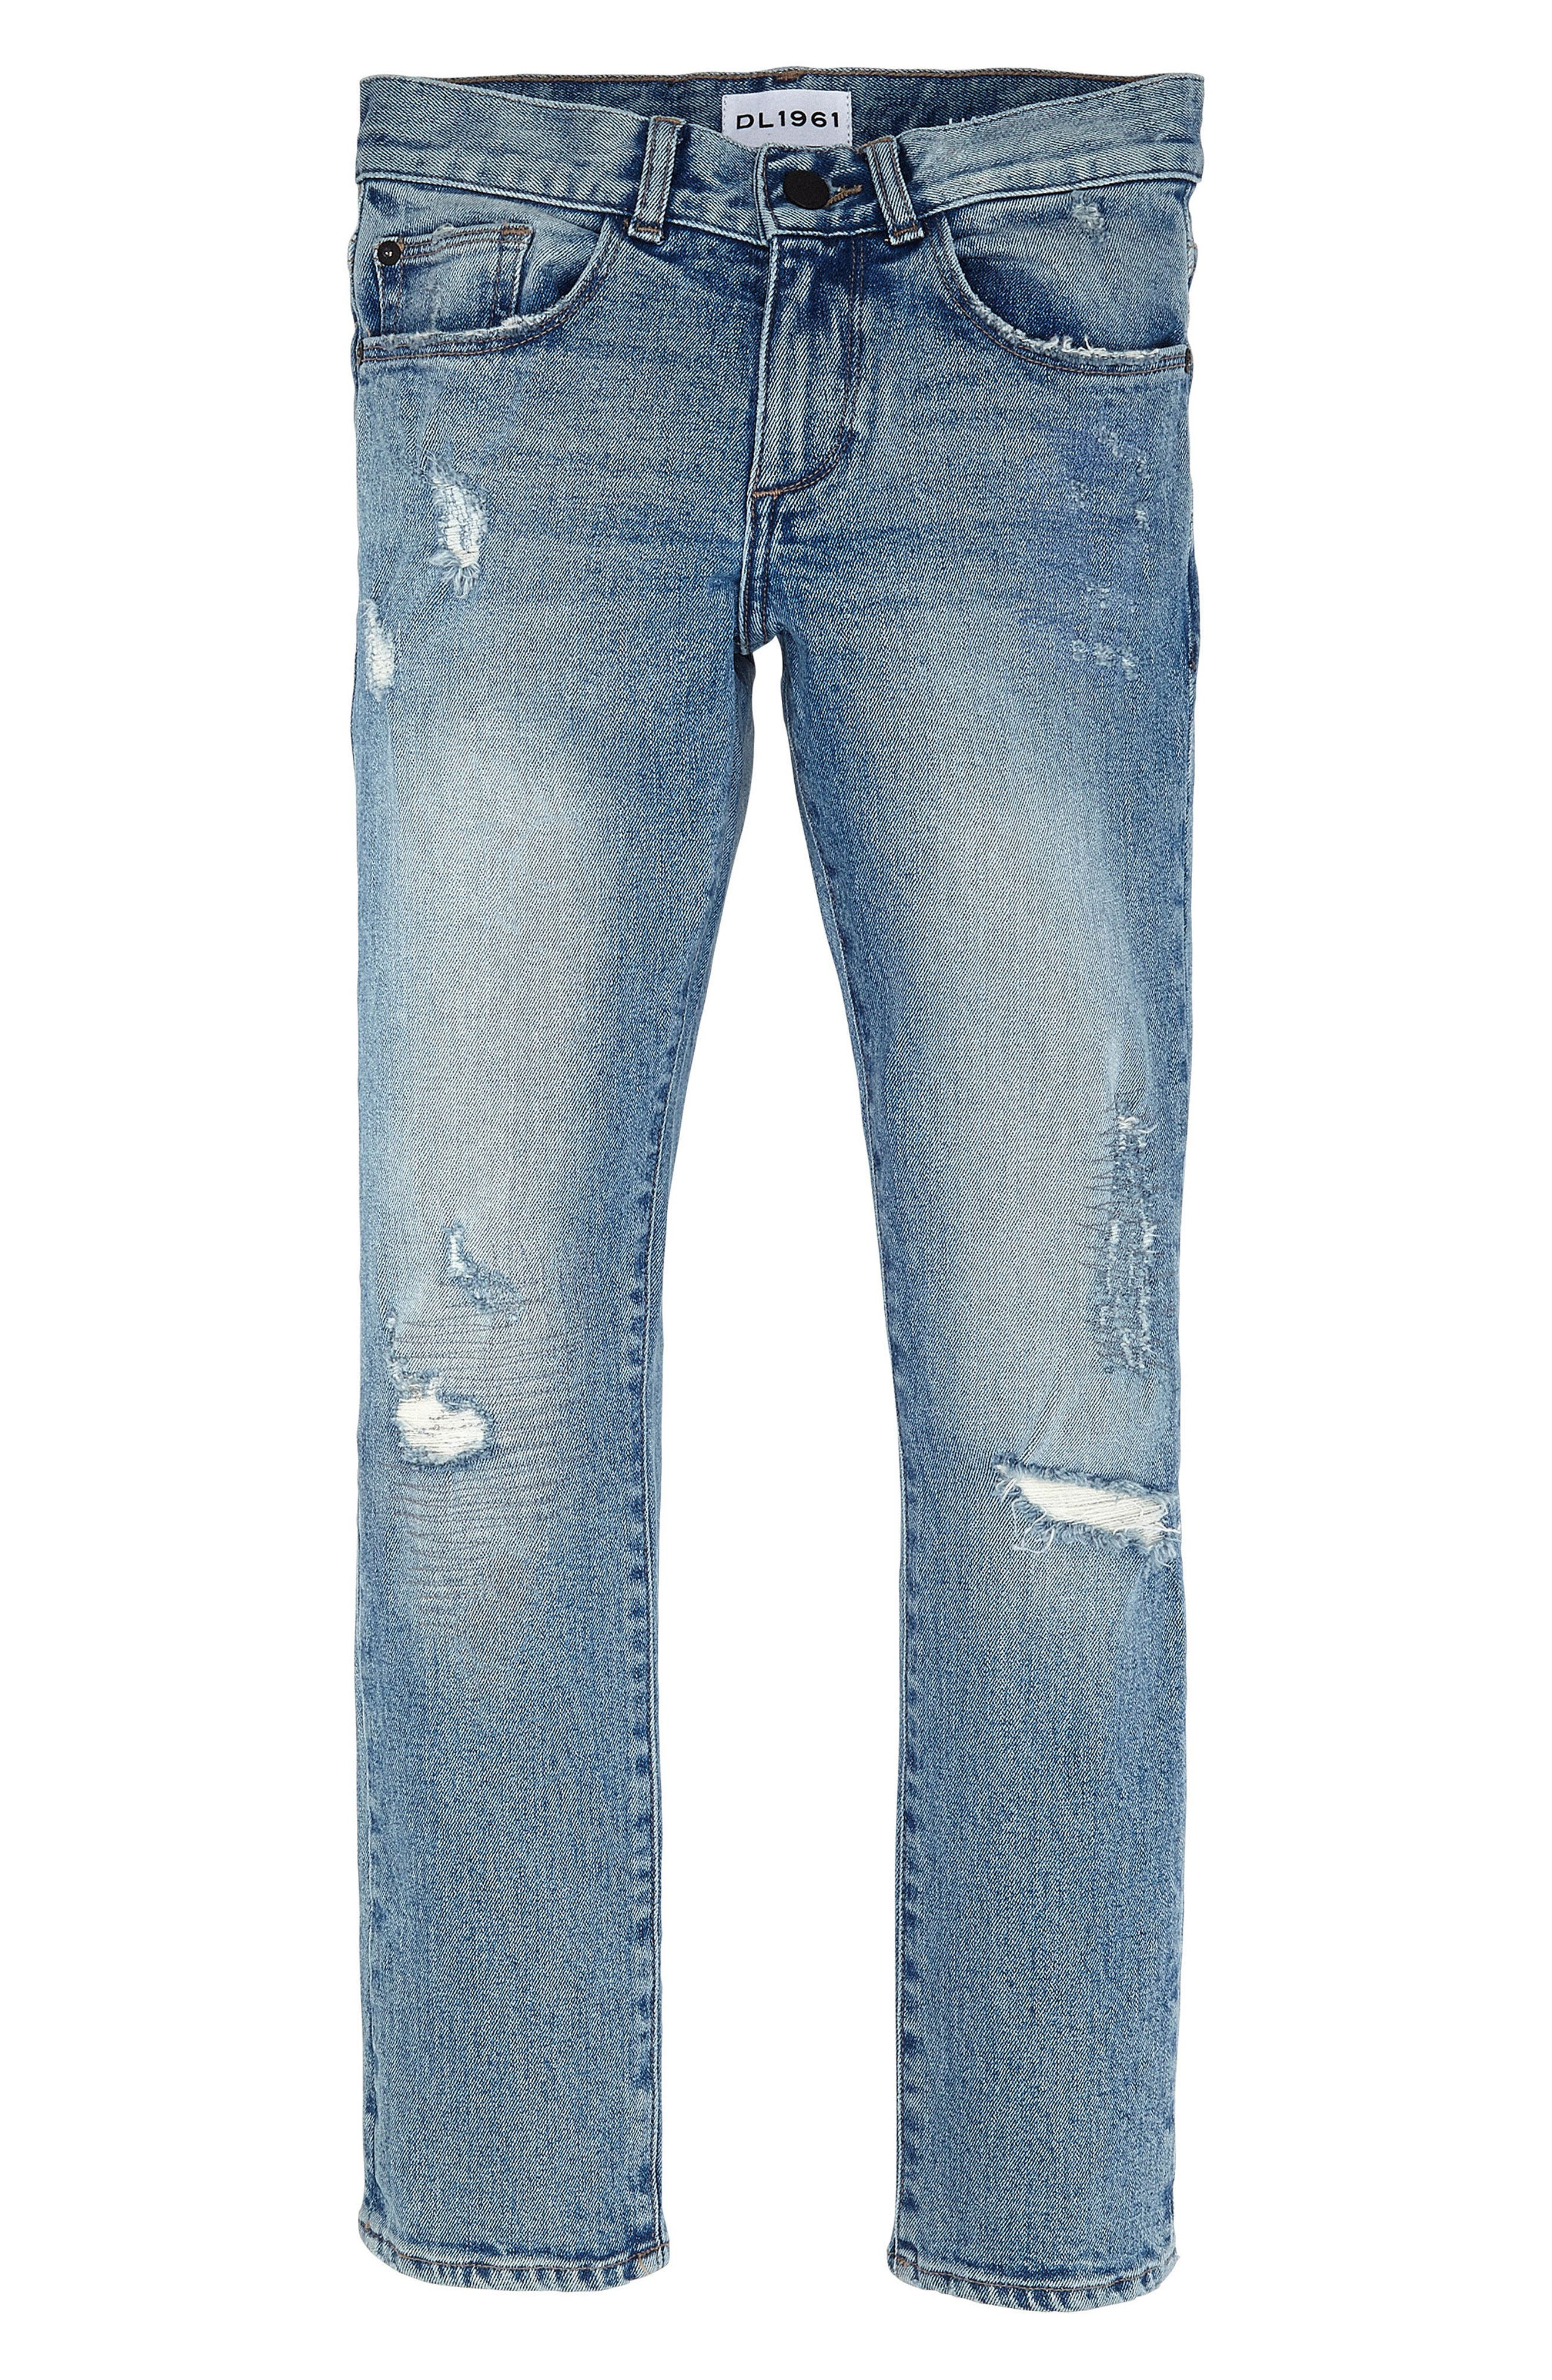 Alternate Image 1 Selected - DL1961 Hawke Skinny Fit Rip and Repair Jeans (Toddler Boys & Little Boys)